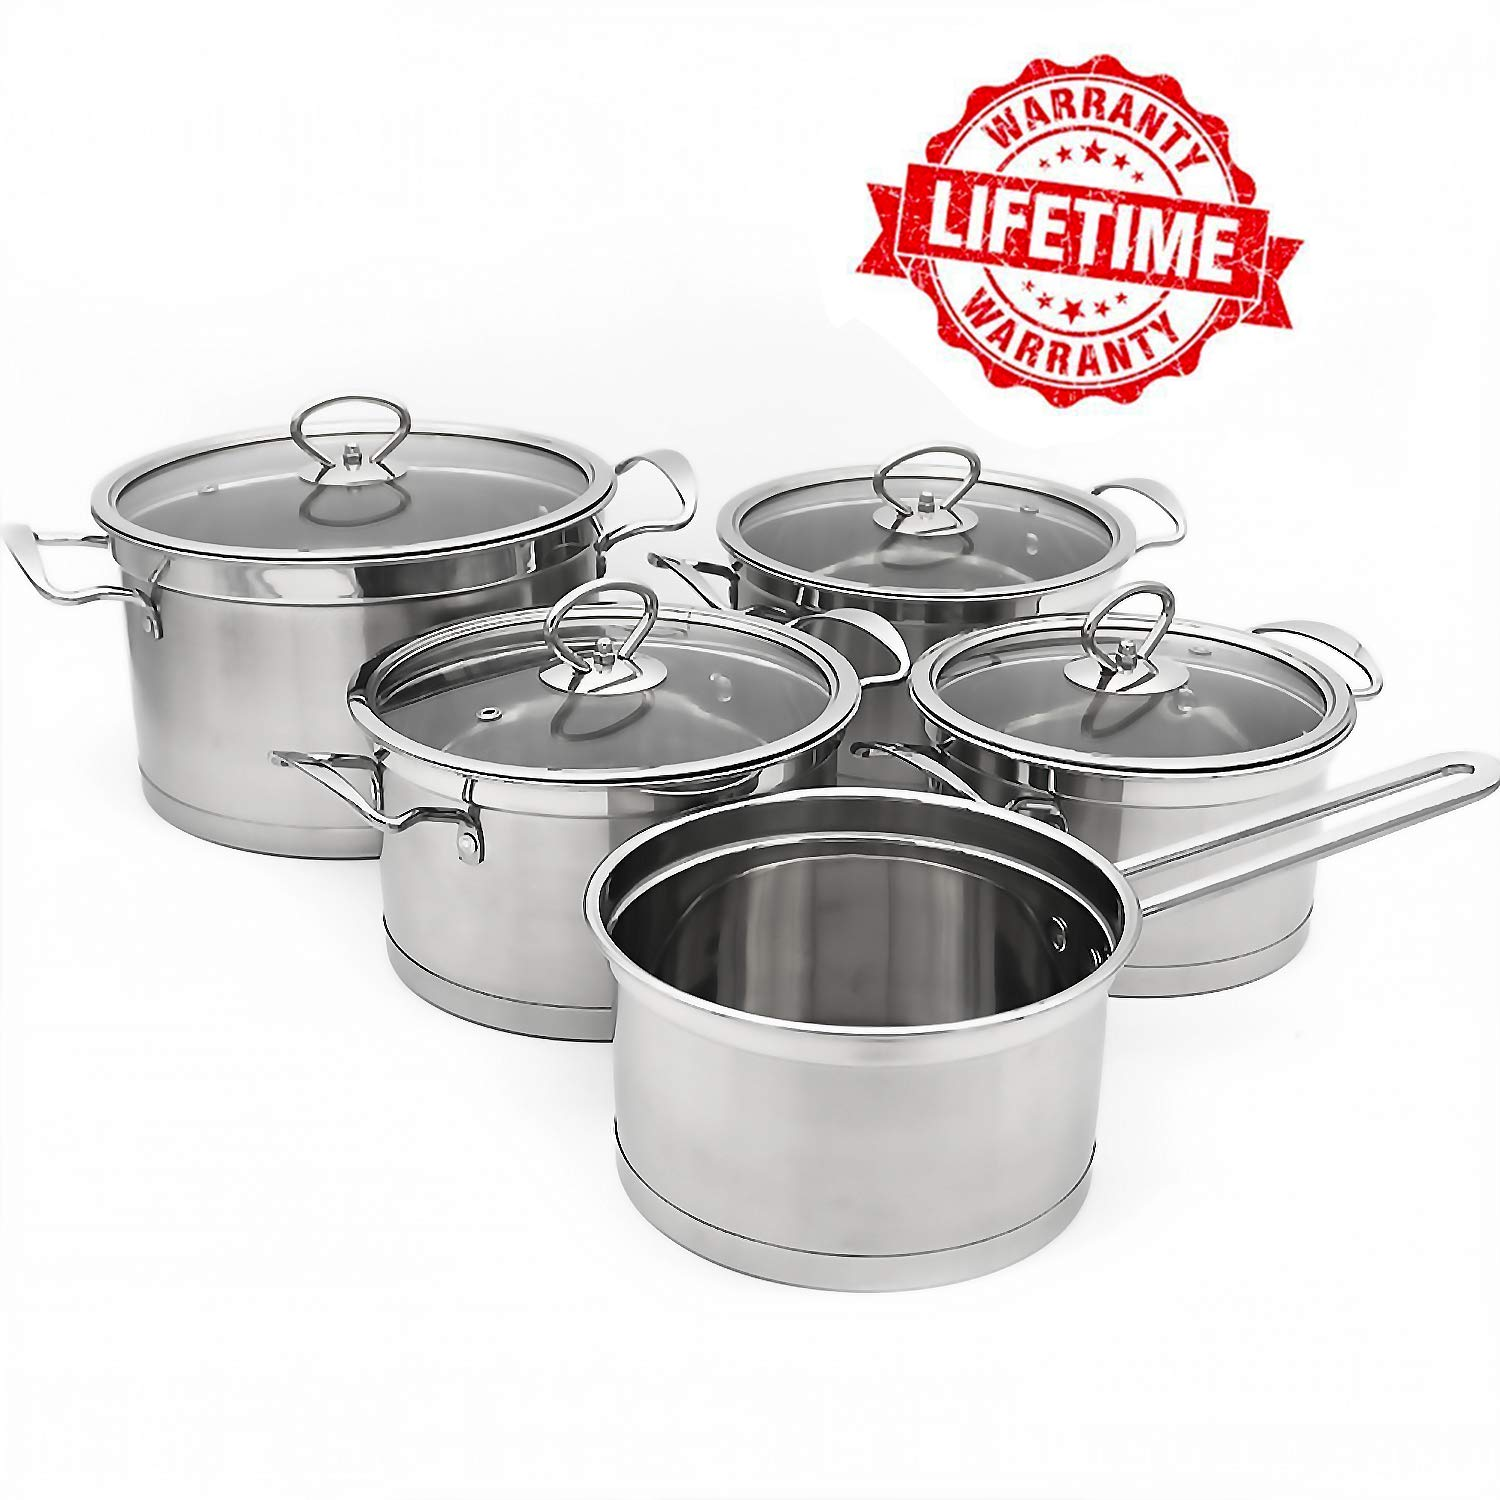 Indoor Ultima Tri-ply Stainless Steel Pot and Pans Set, Professional 9-Piece Cookware Set with Glass Lid